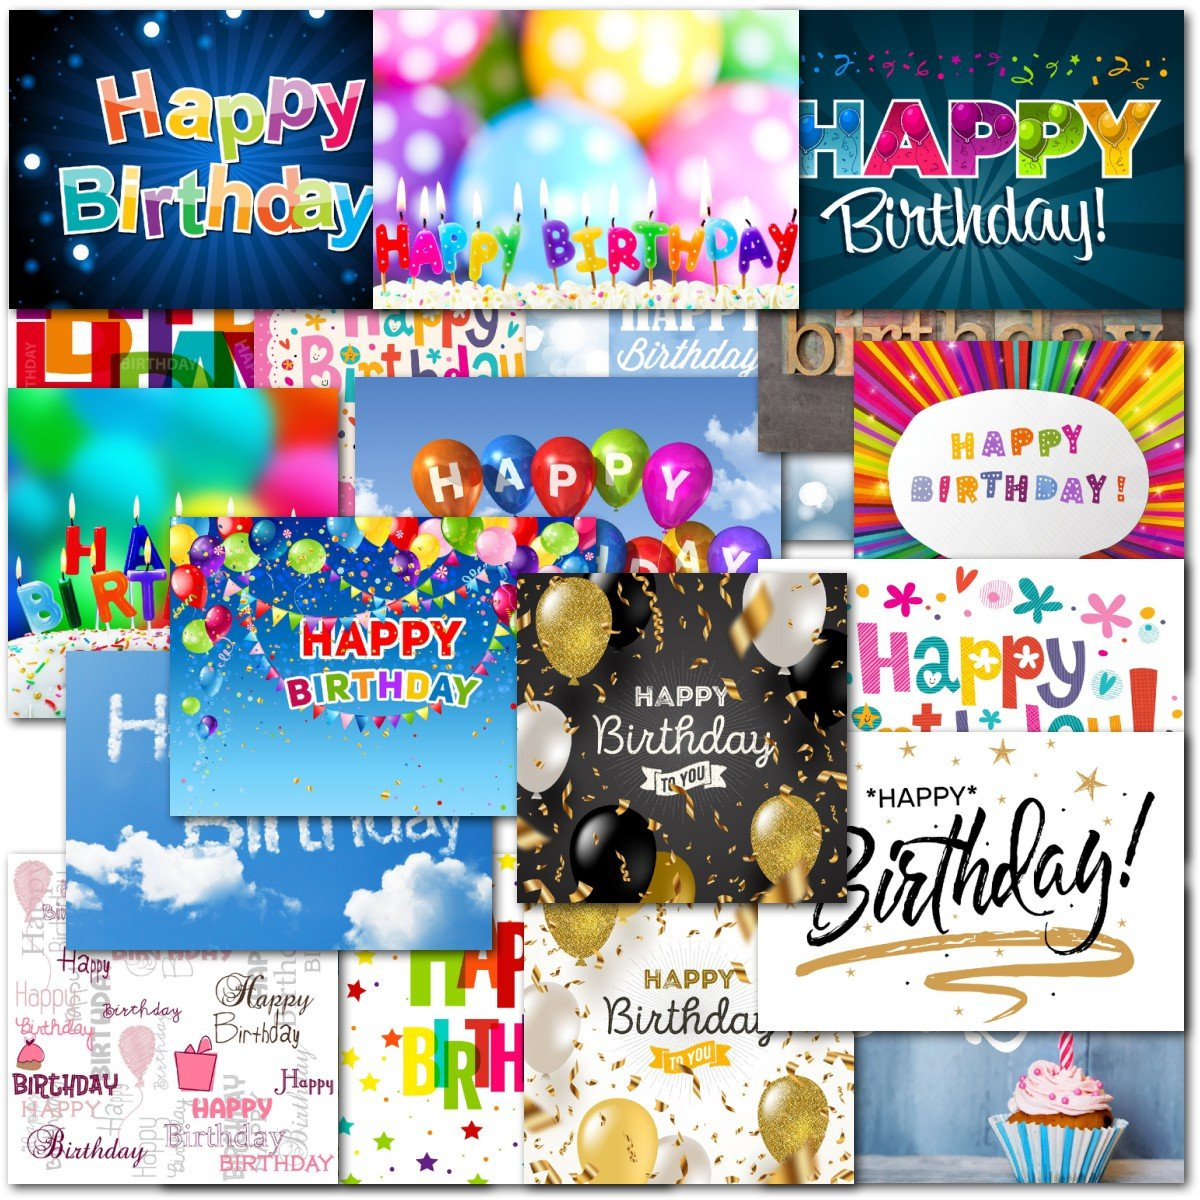 Pack Of 20 Mixed Happy Birthday Premium Greeting Cards Doodlecards Christmas Ornament